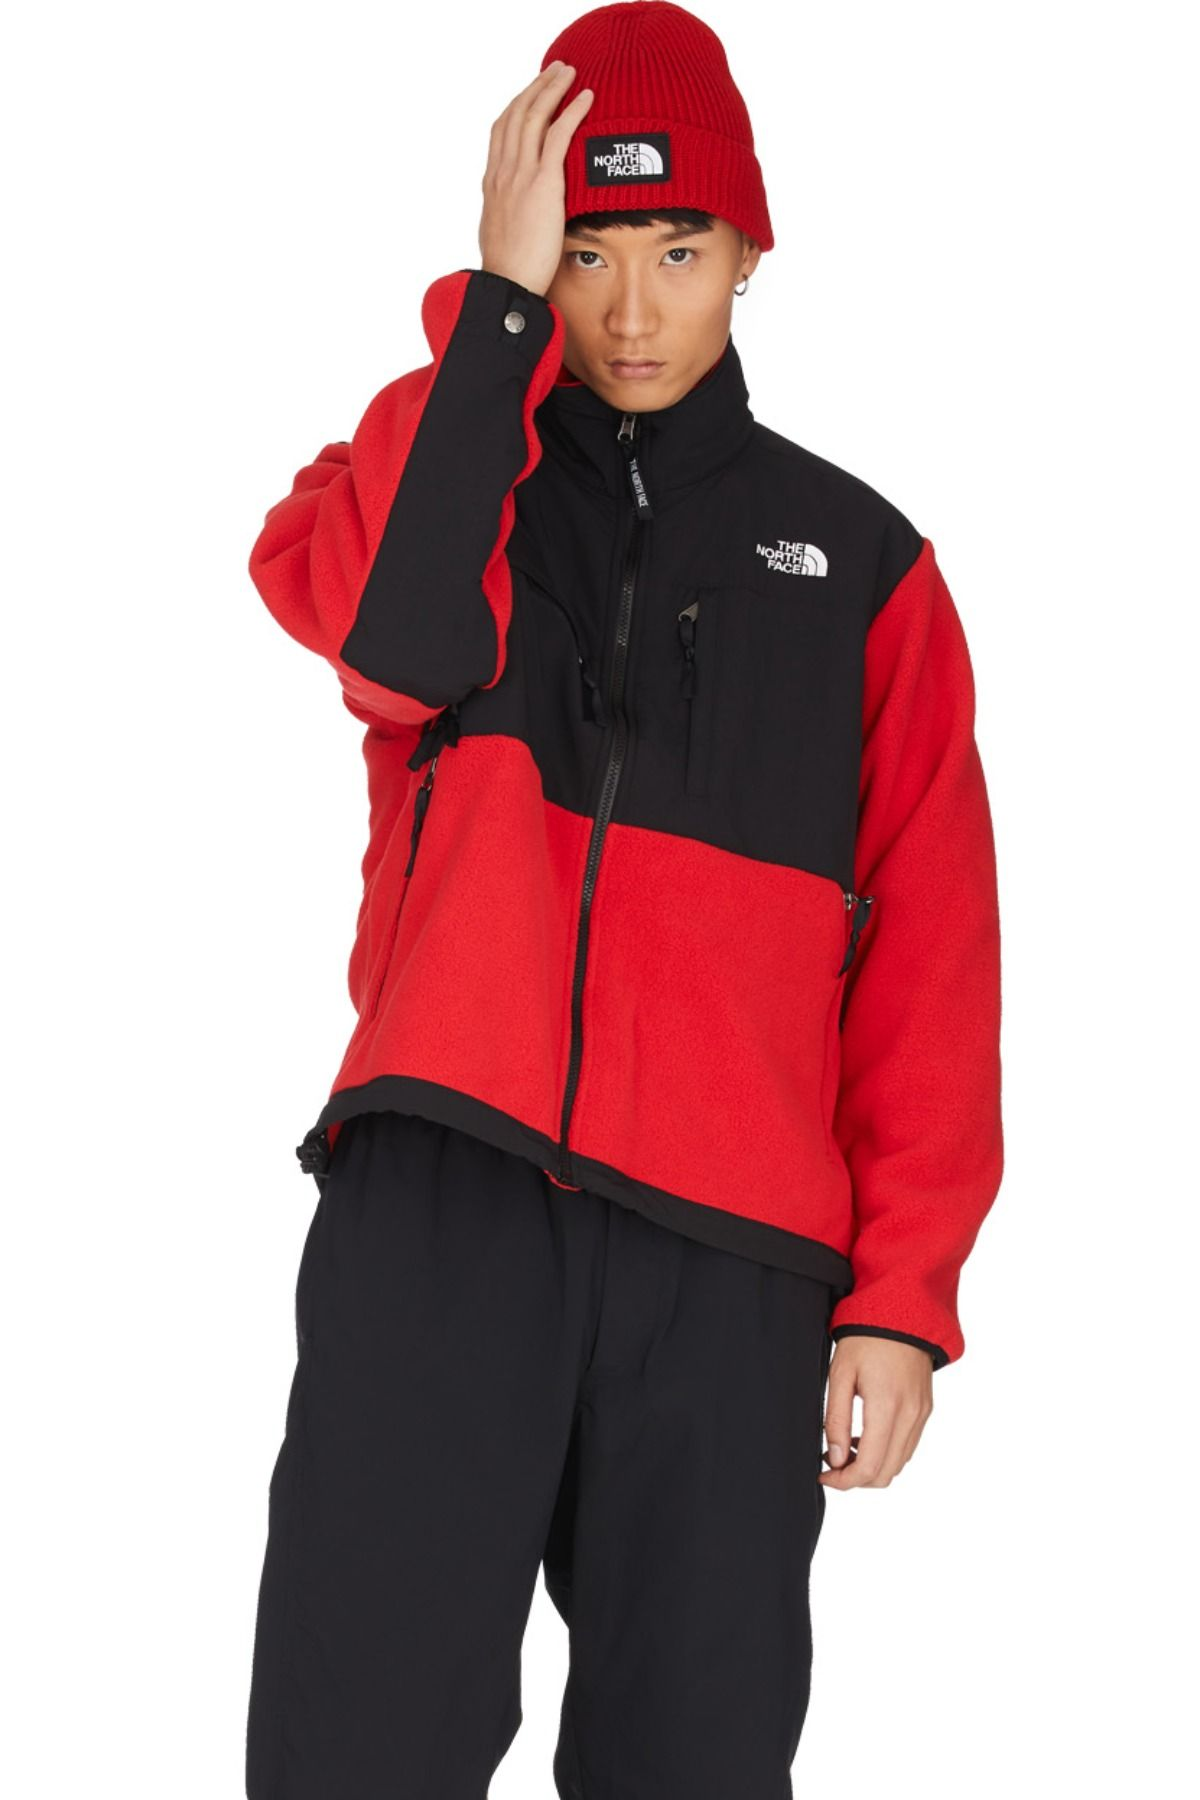 The North Face 95 Retro Denali Jacket Tnf Red In 2021 North Face Puffer Jacket Men S Coats Jackets Jacket Outfits [ 1800 x 1200 Pixel ]